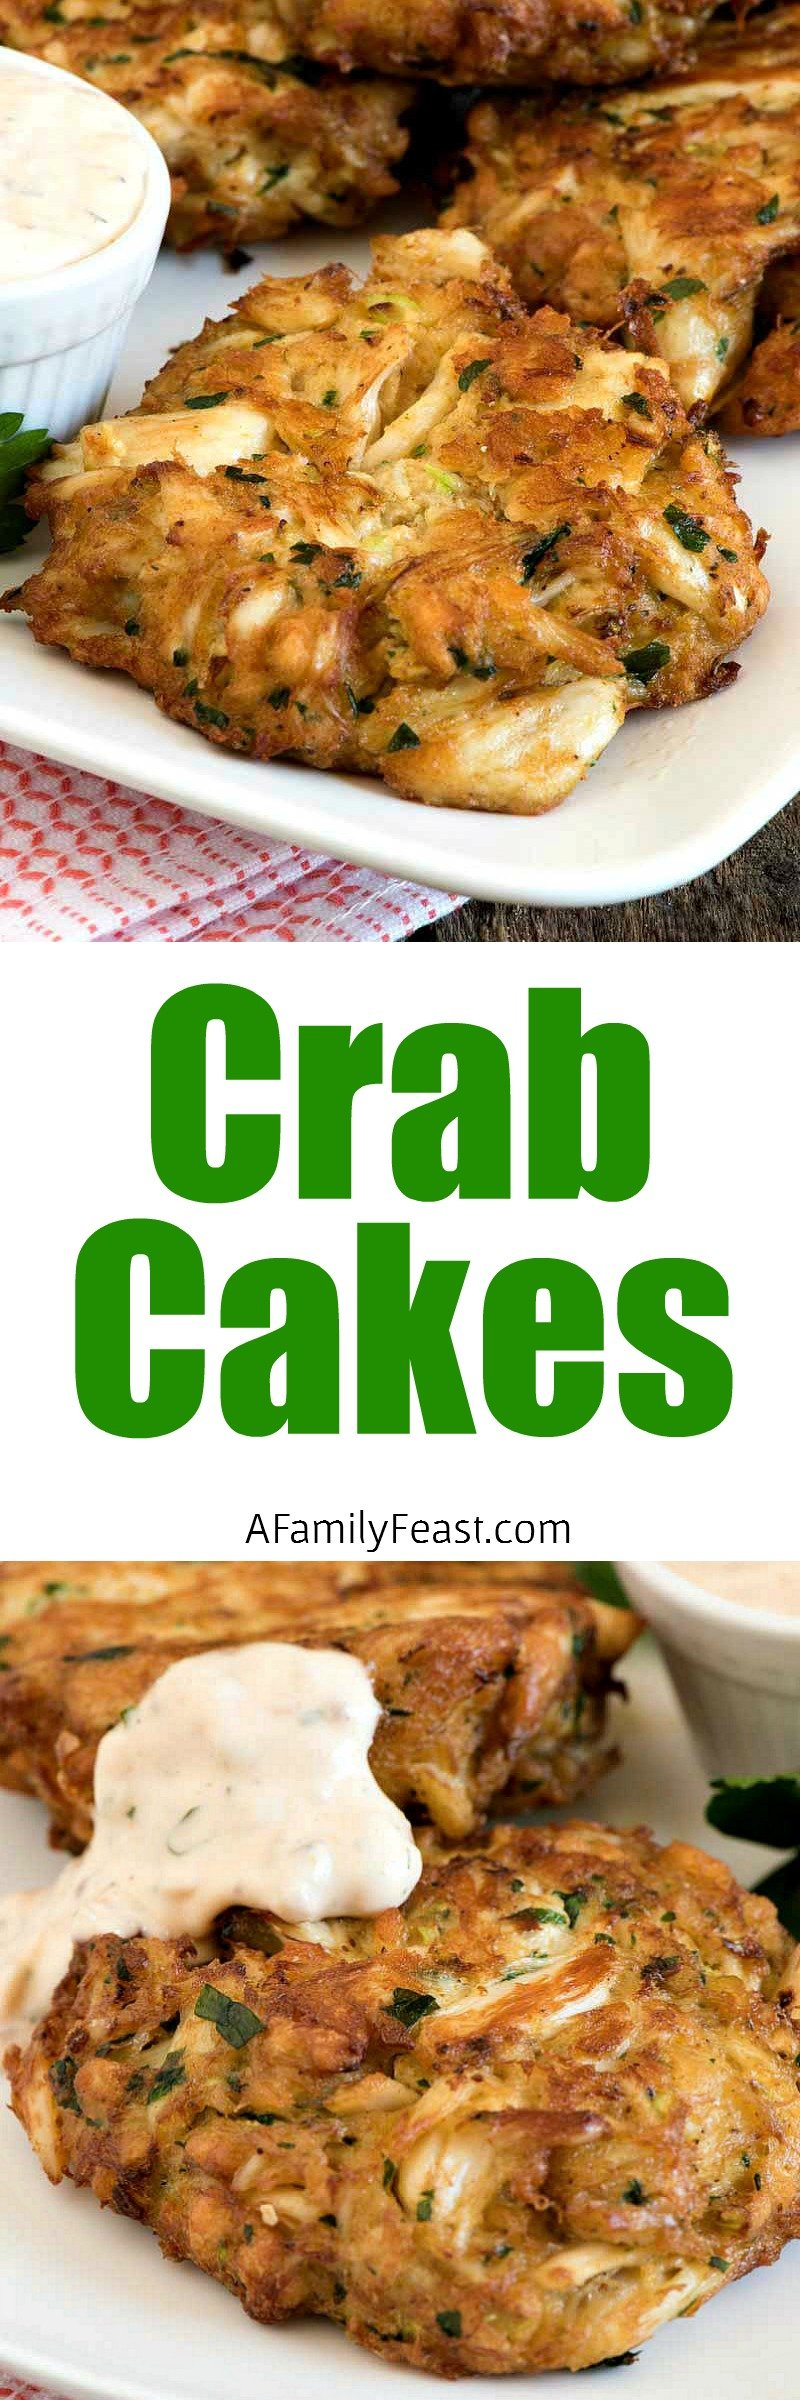 Easy Crab Cakes Recipe Video A Family Feast